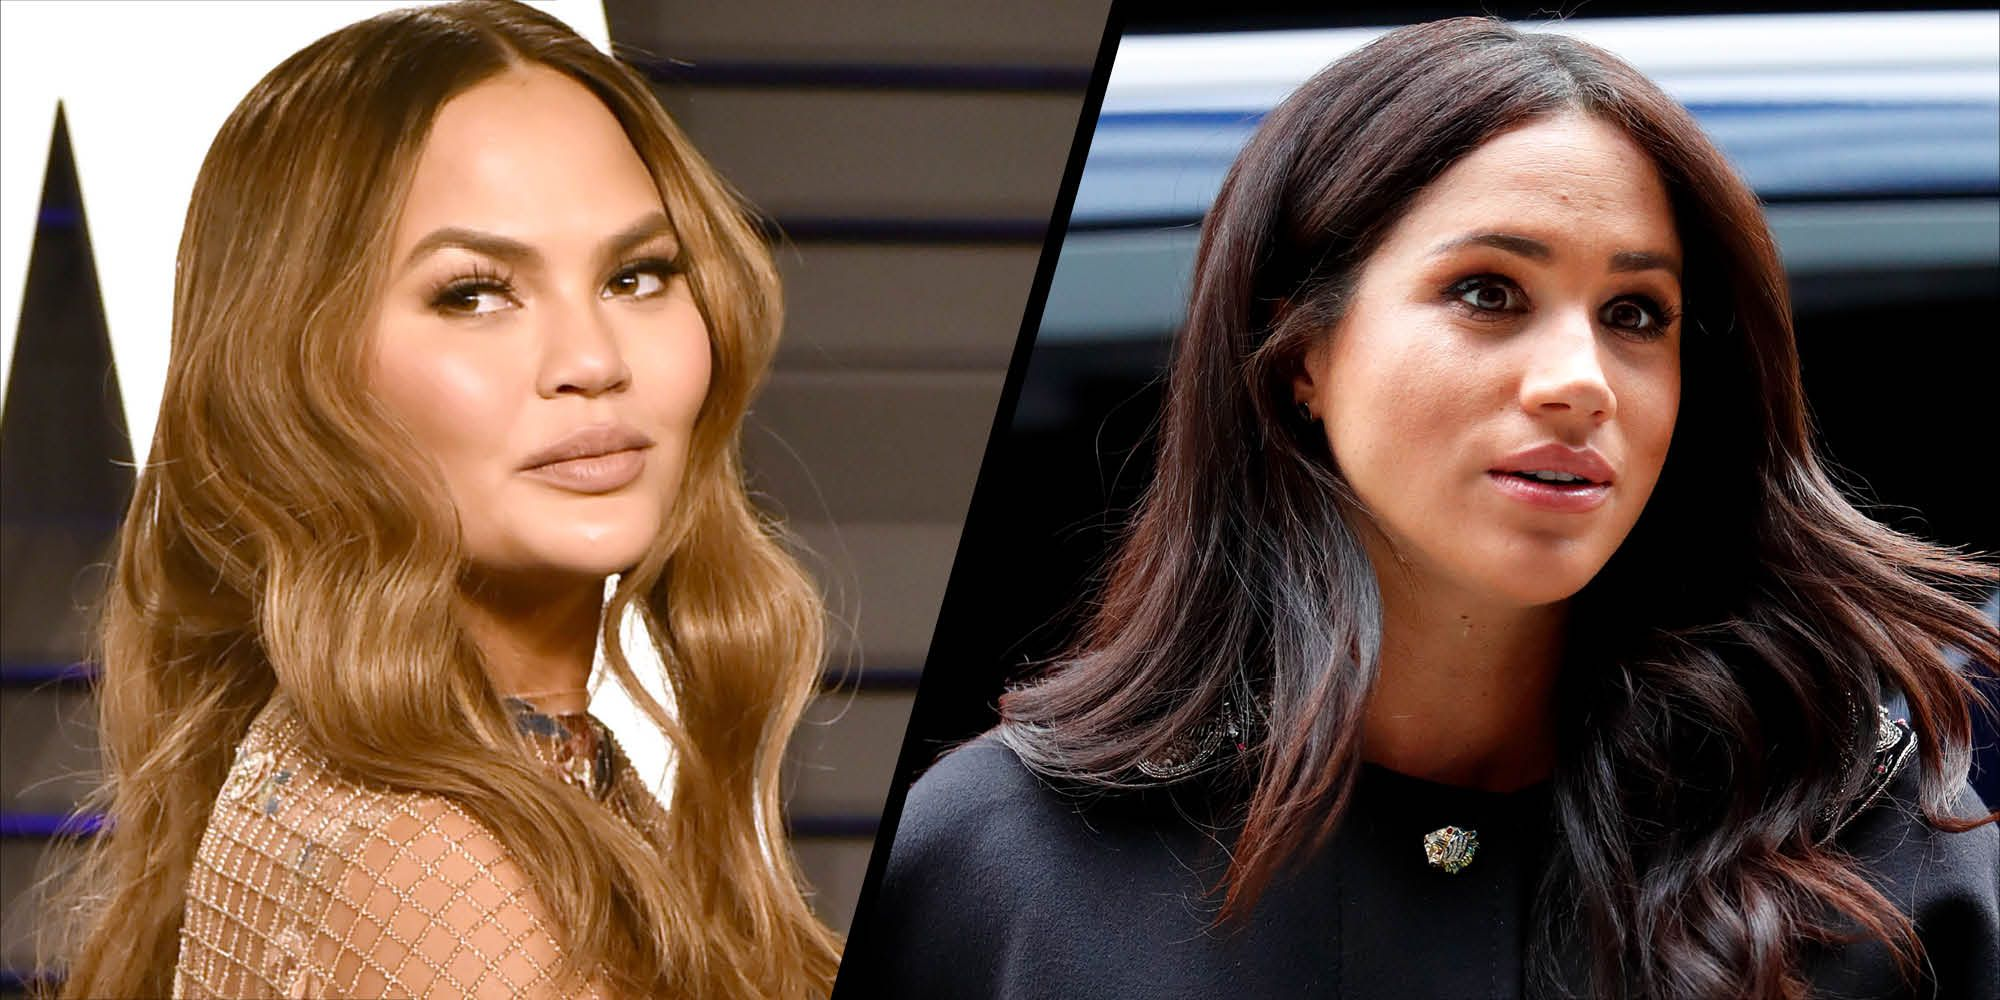 Chrissy Teigen defends Duchess of Sussex over sharing her miscarriage news